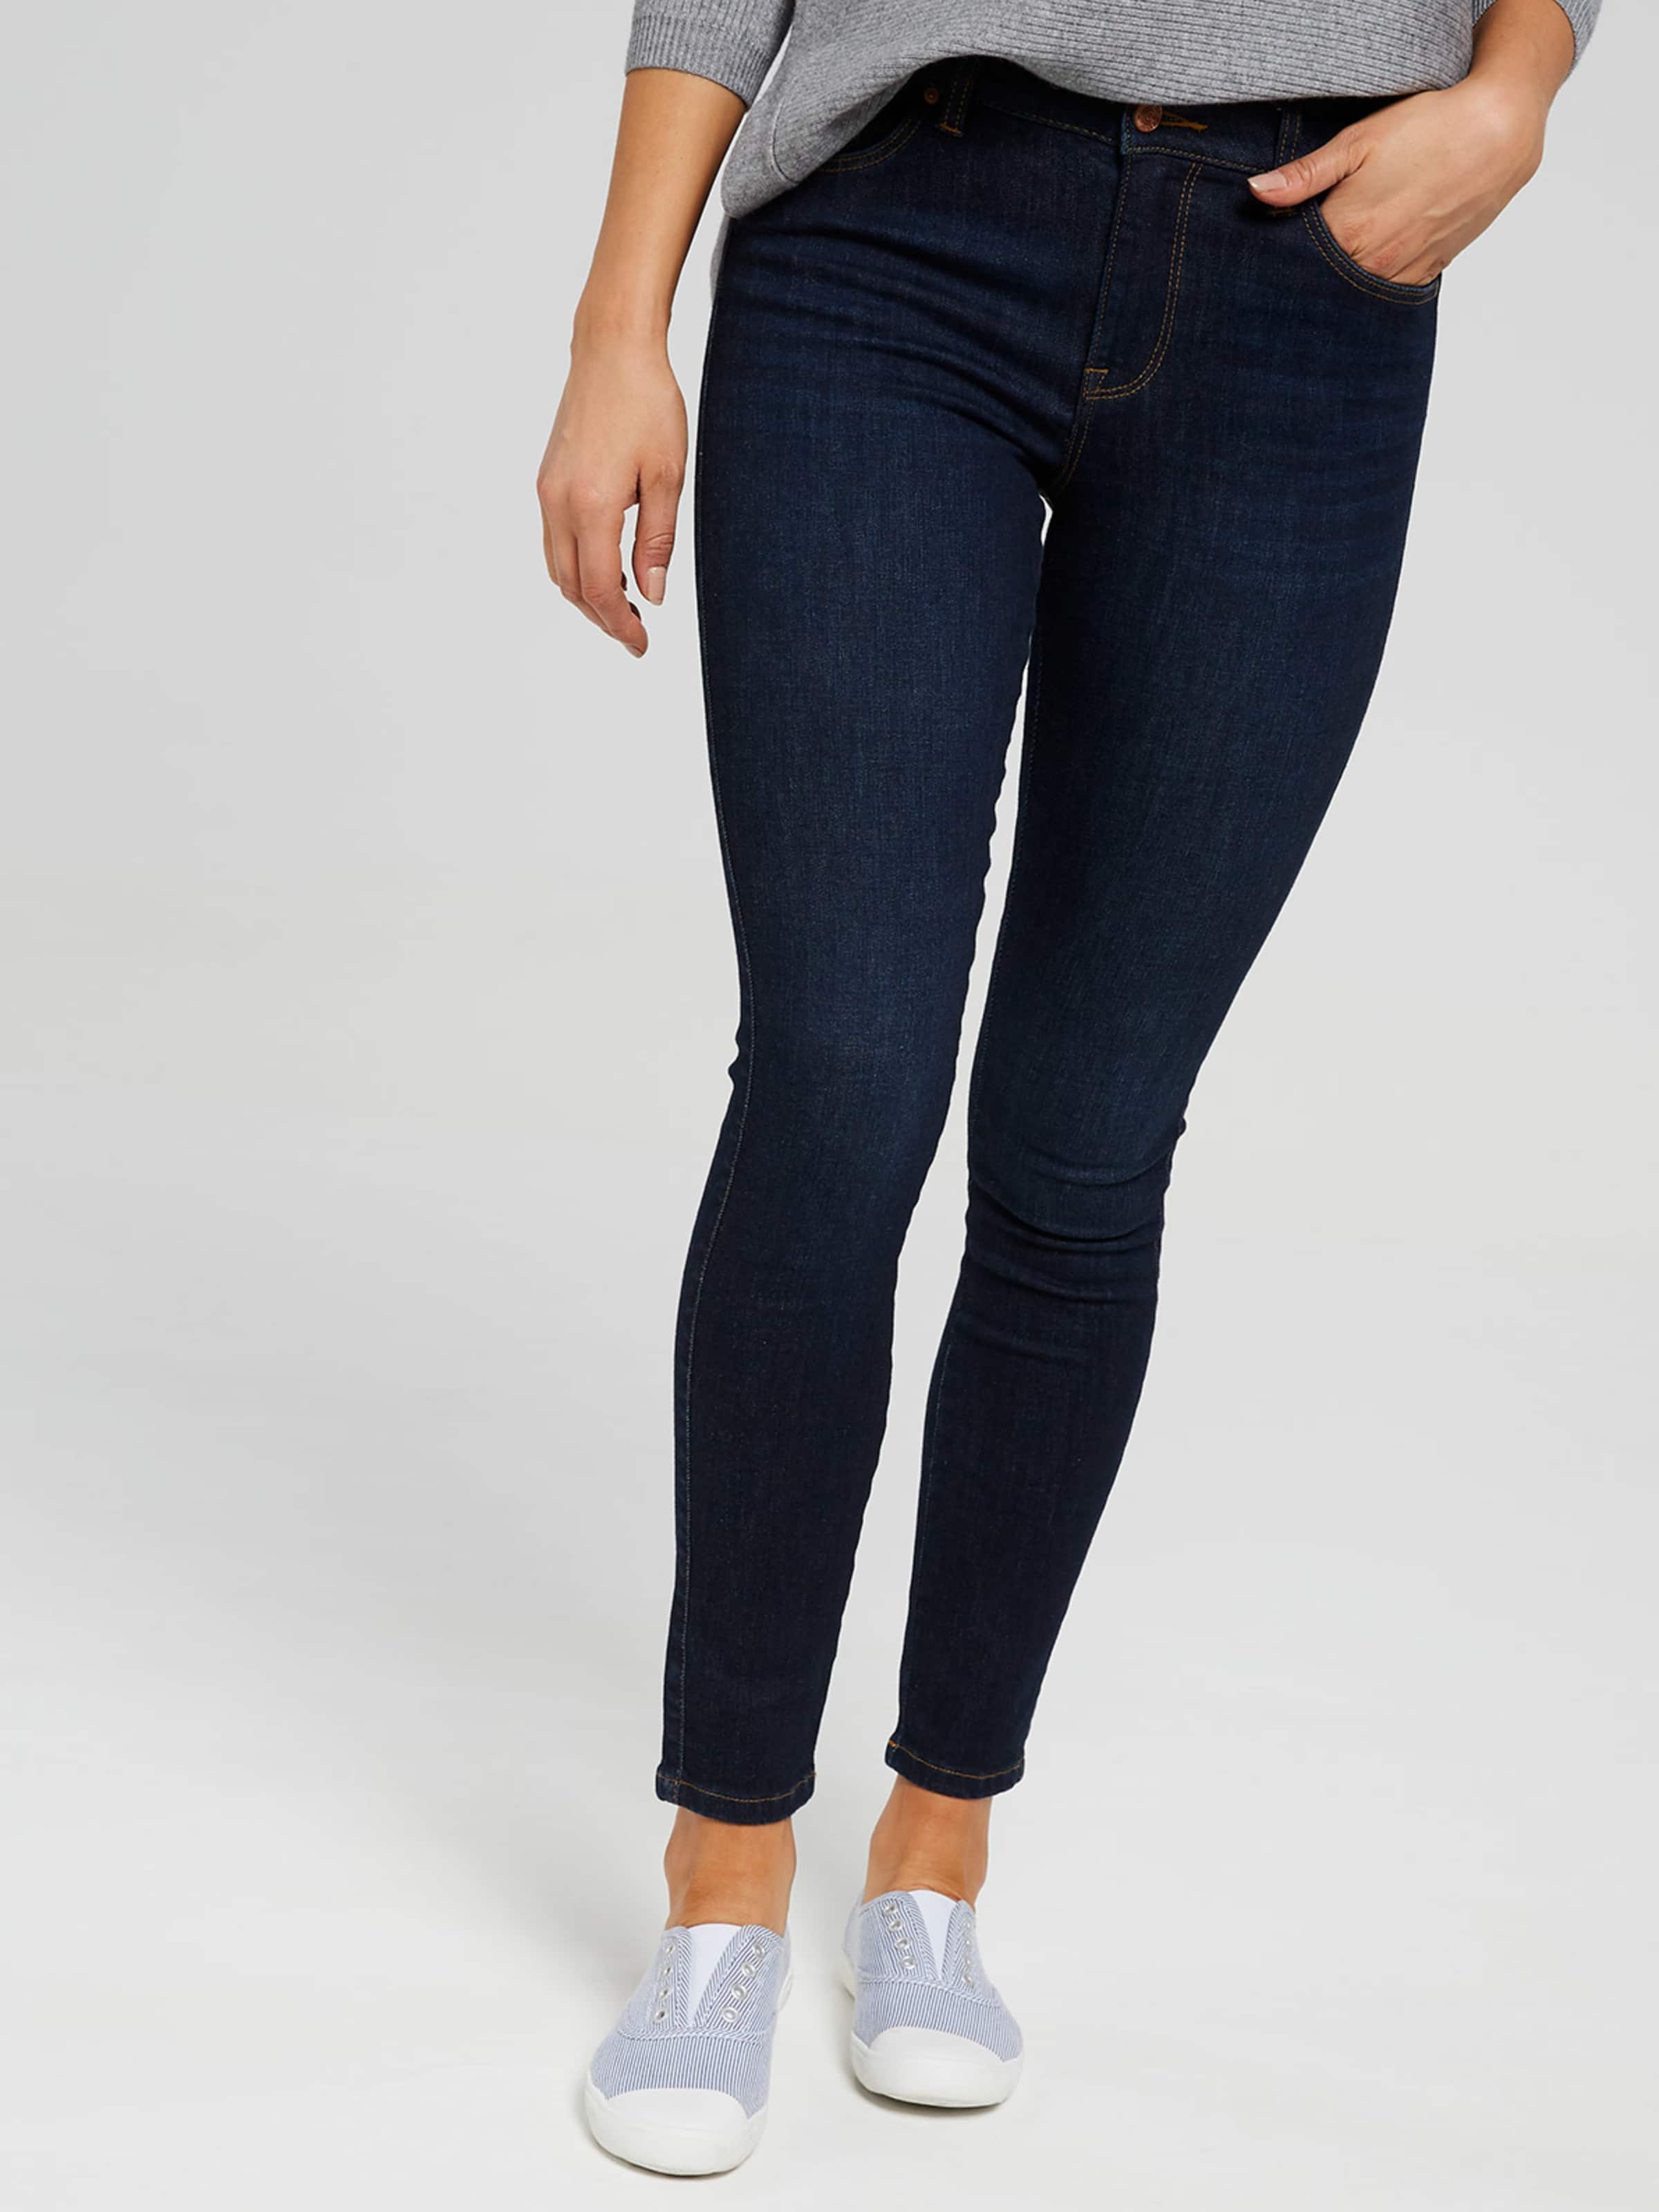 14f9ef0be8ee Image for Classic High Rise Ankle Skinny Jean from Just Jeans ...